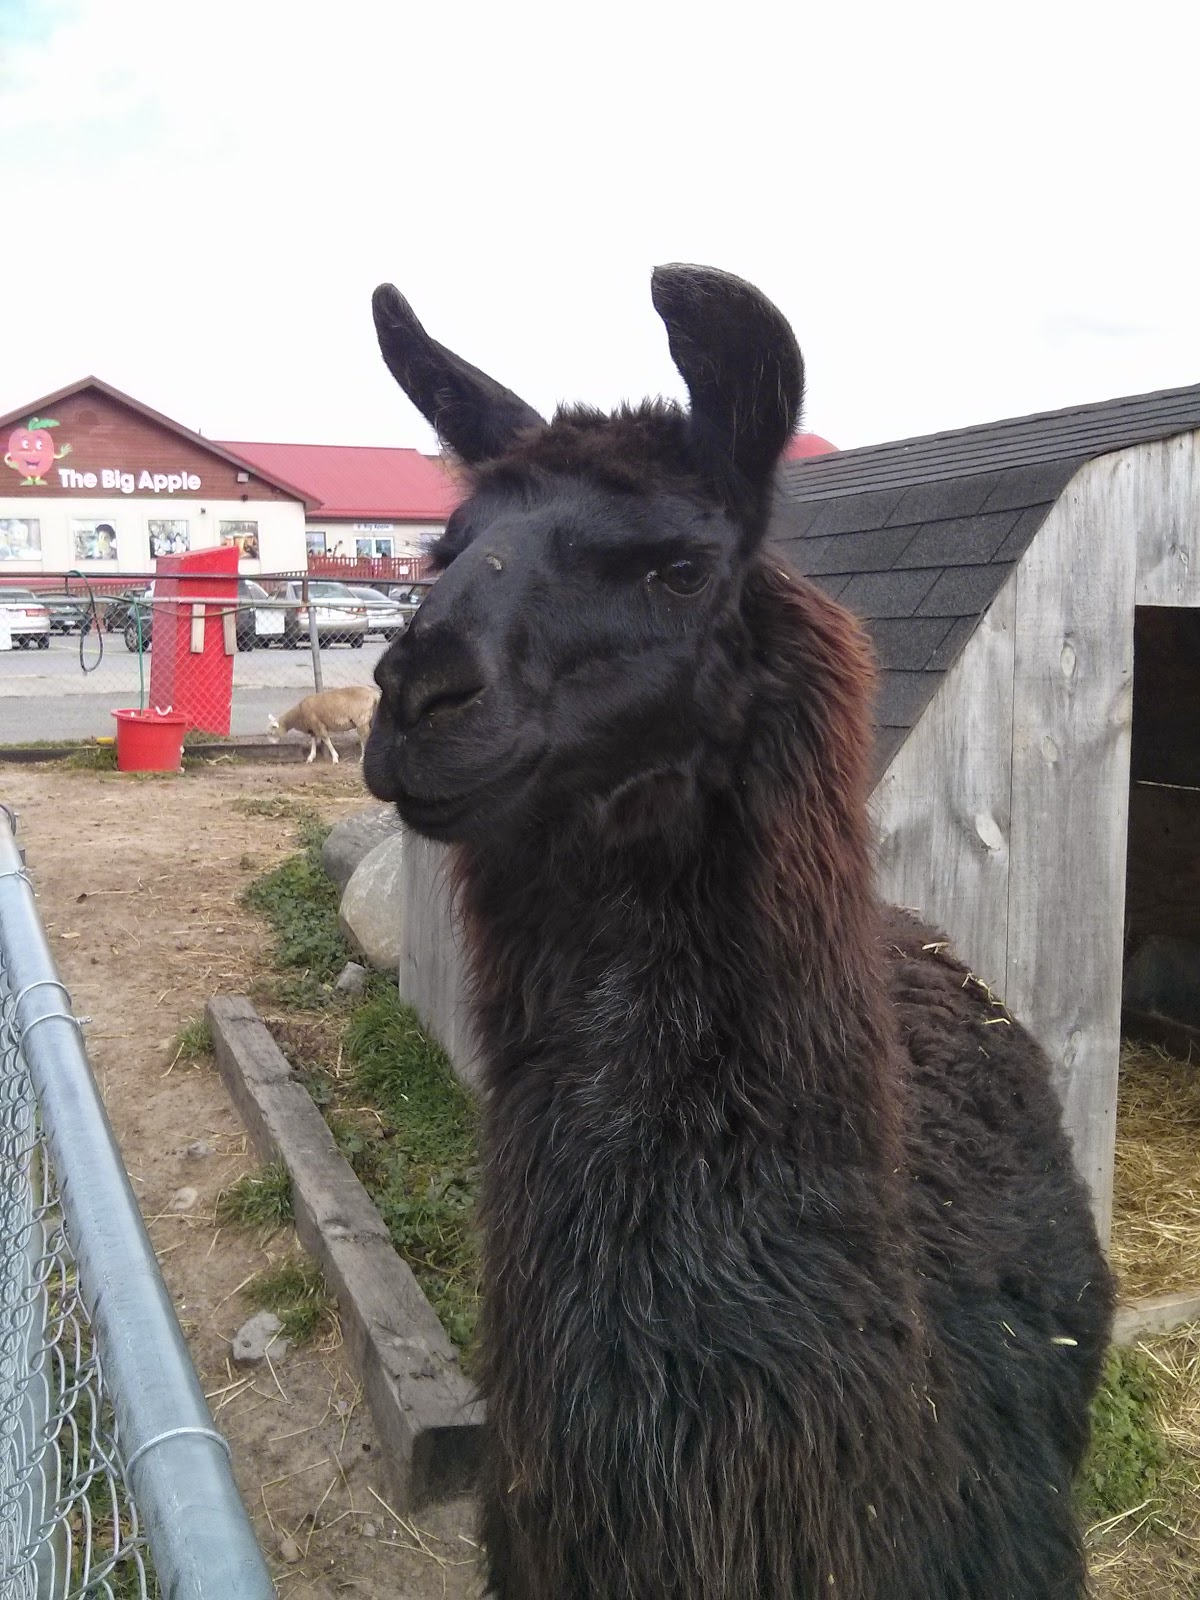 llama at Big Apple Colborne petting farm copyright 2014 OneQuarterMama.ca